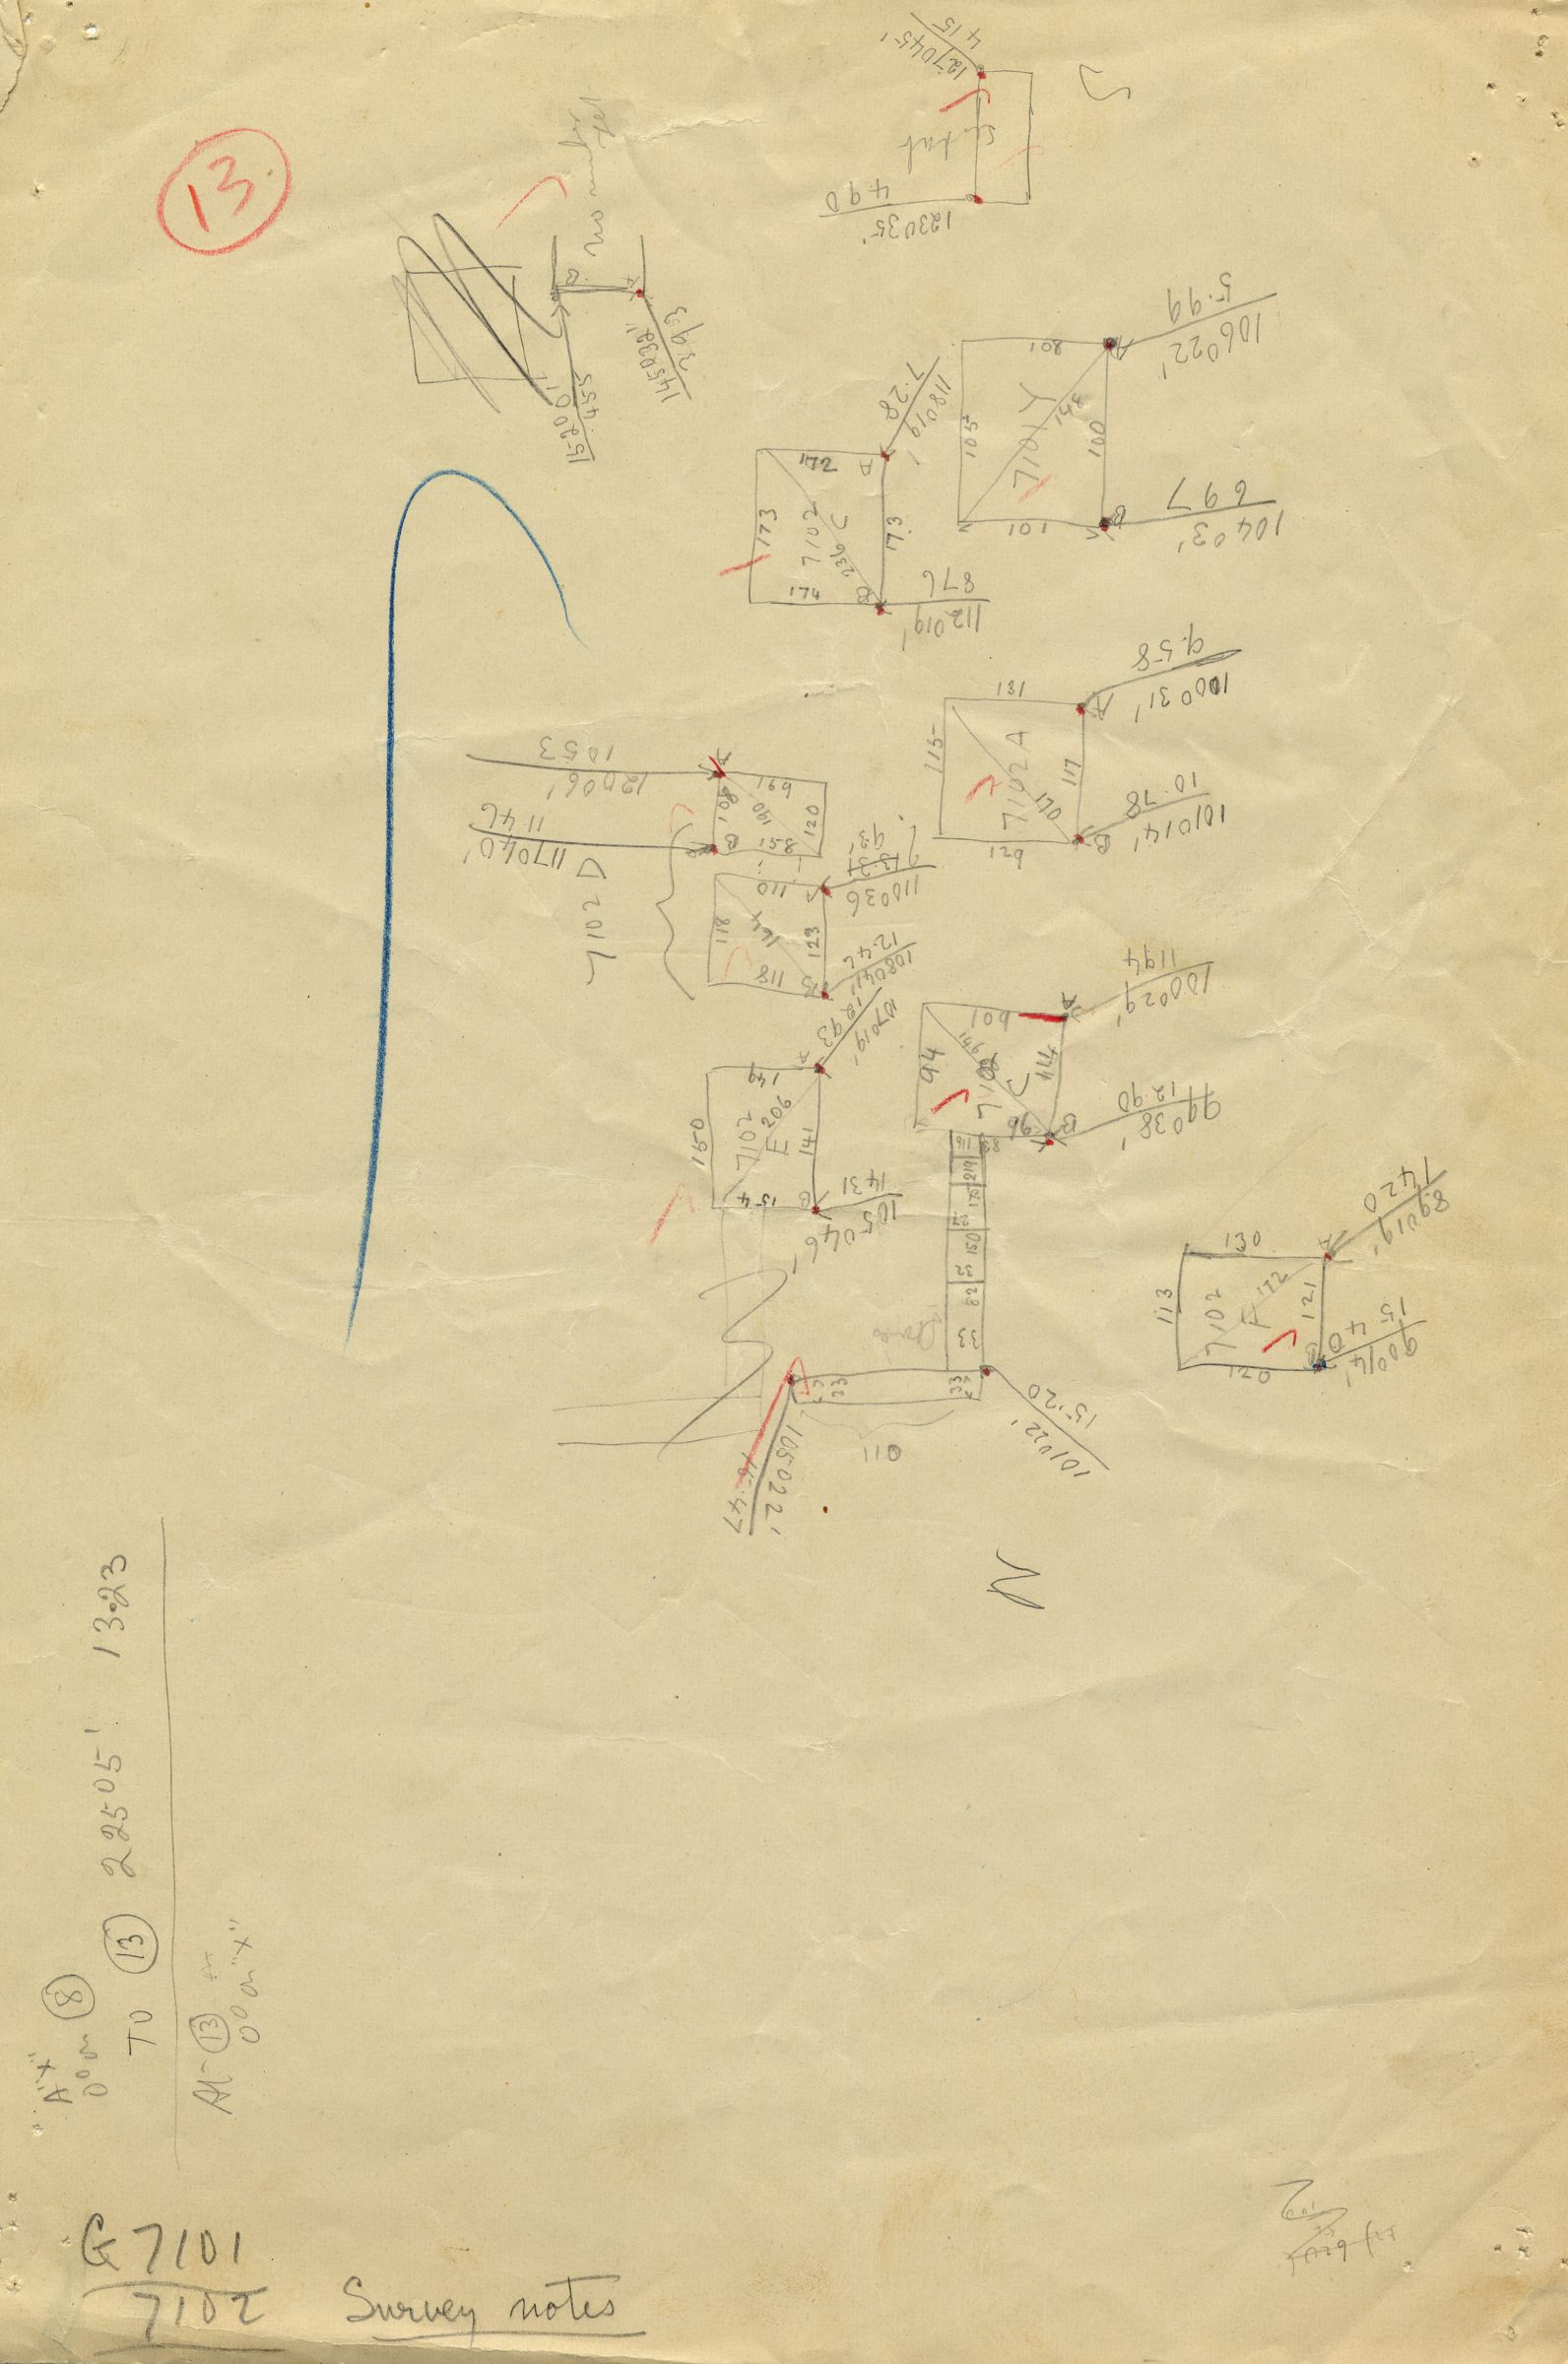 Maps and plans: G 7101, Sketch plan of shafts